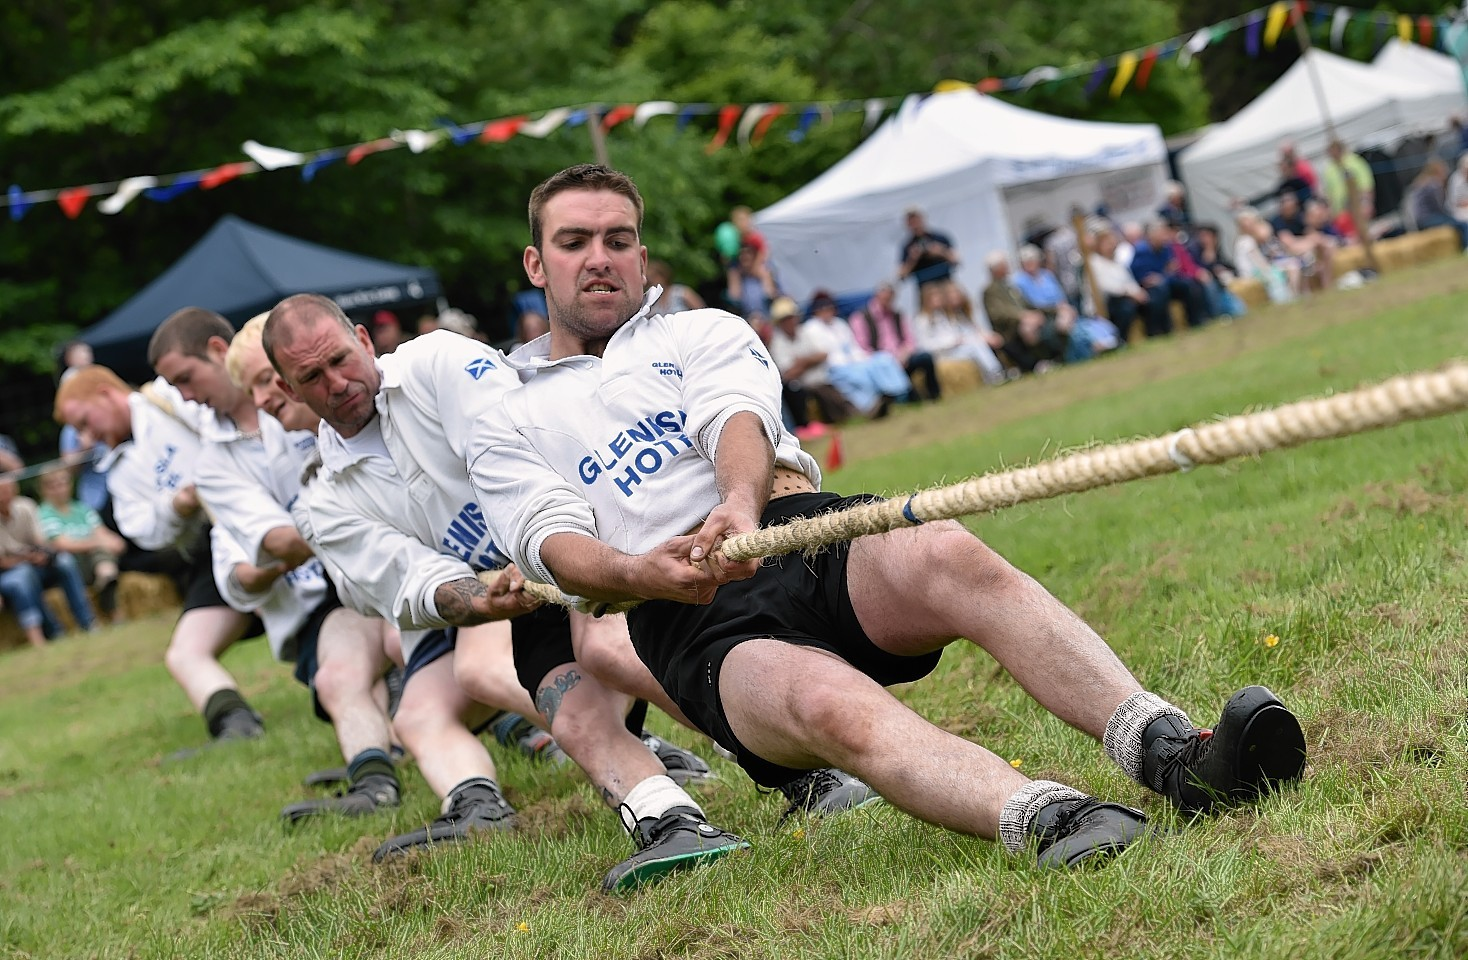 A record 2,500 people attended the 39th Drumtochty Highland Games on Saturday. Picture by Colin Rennie